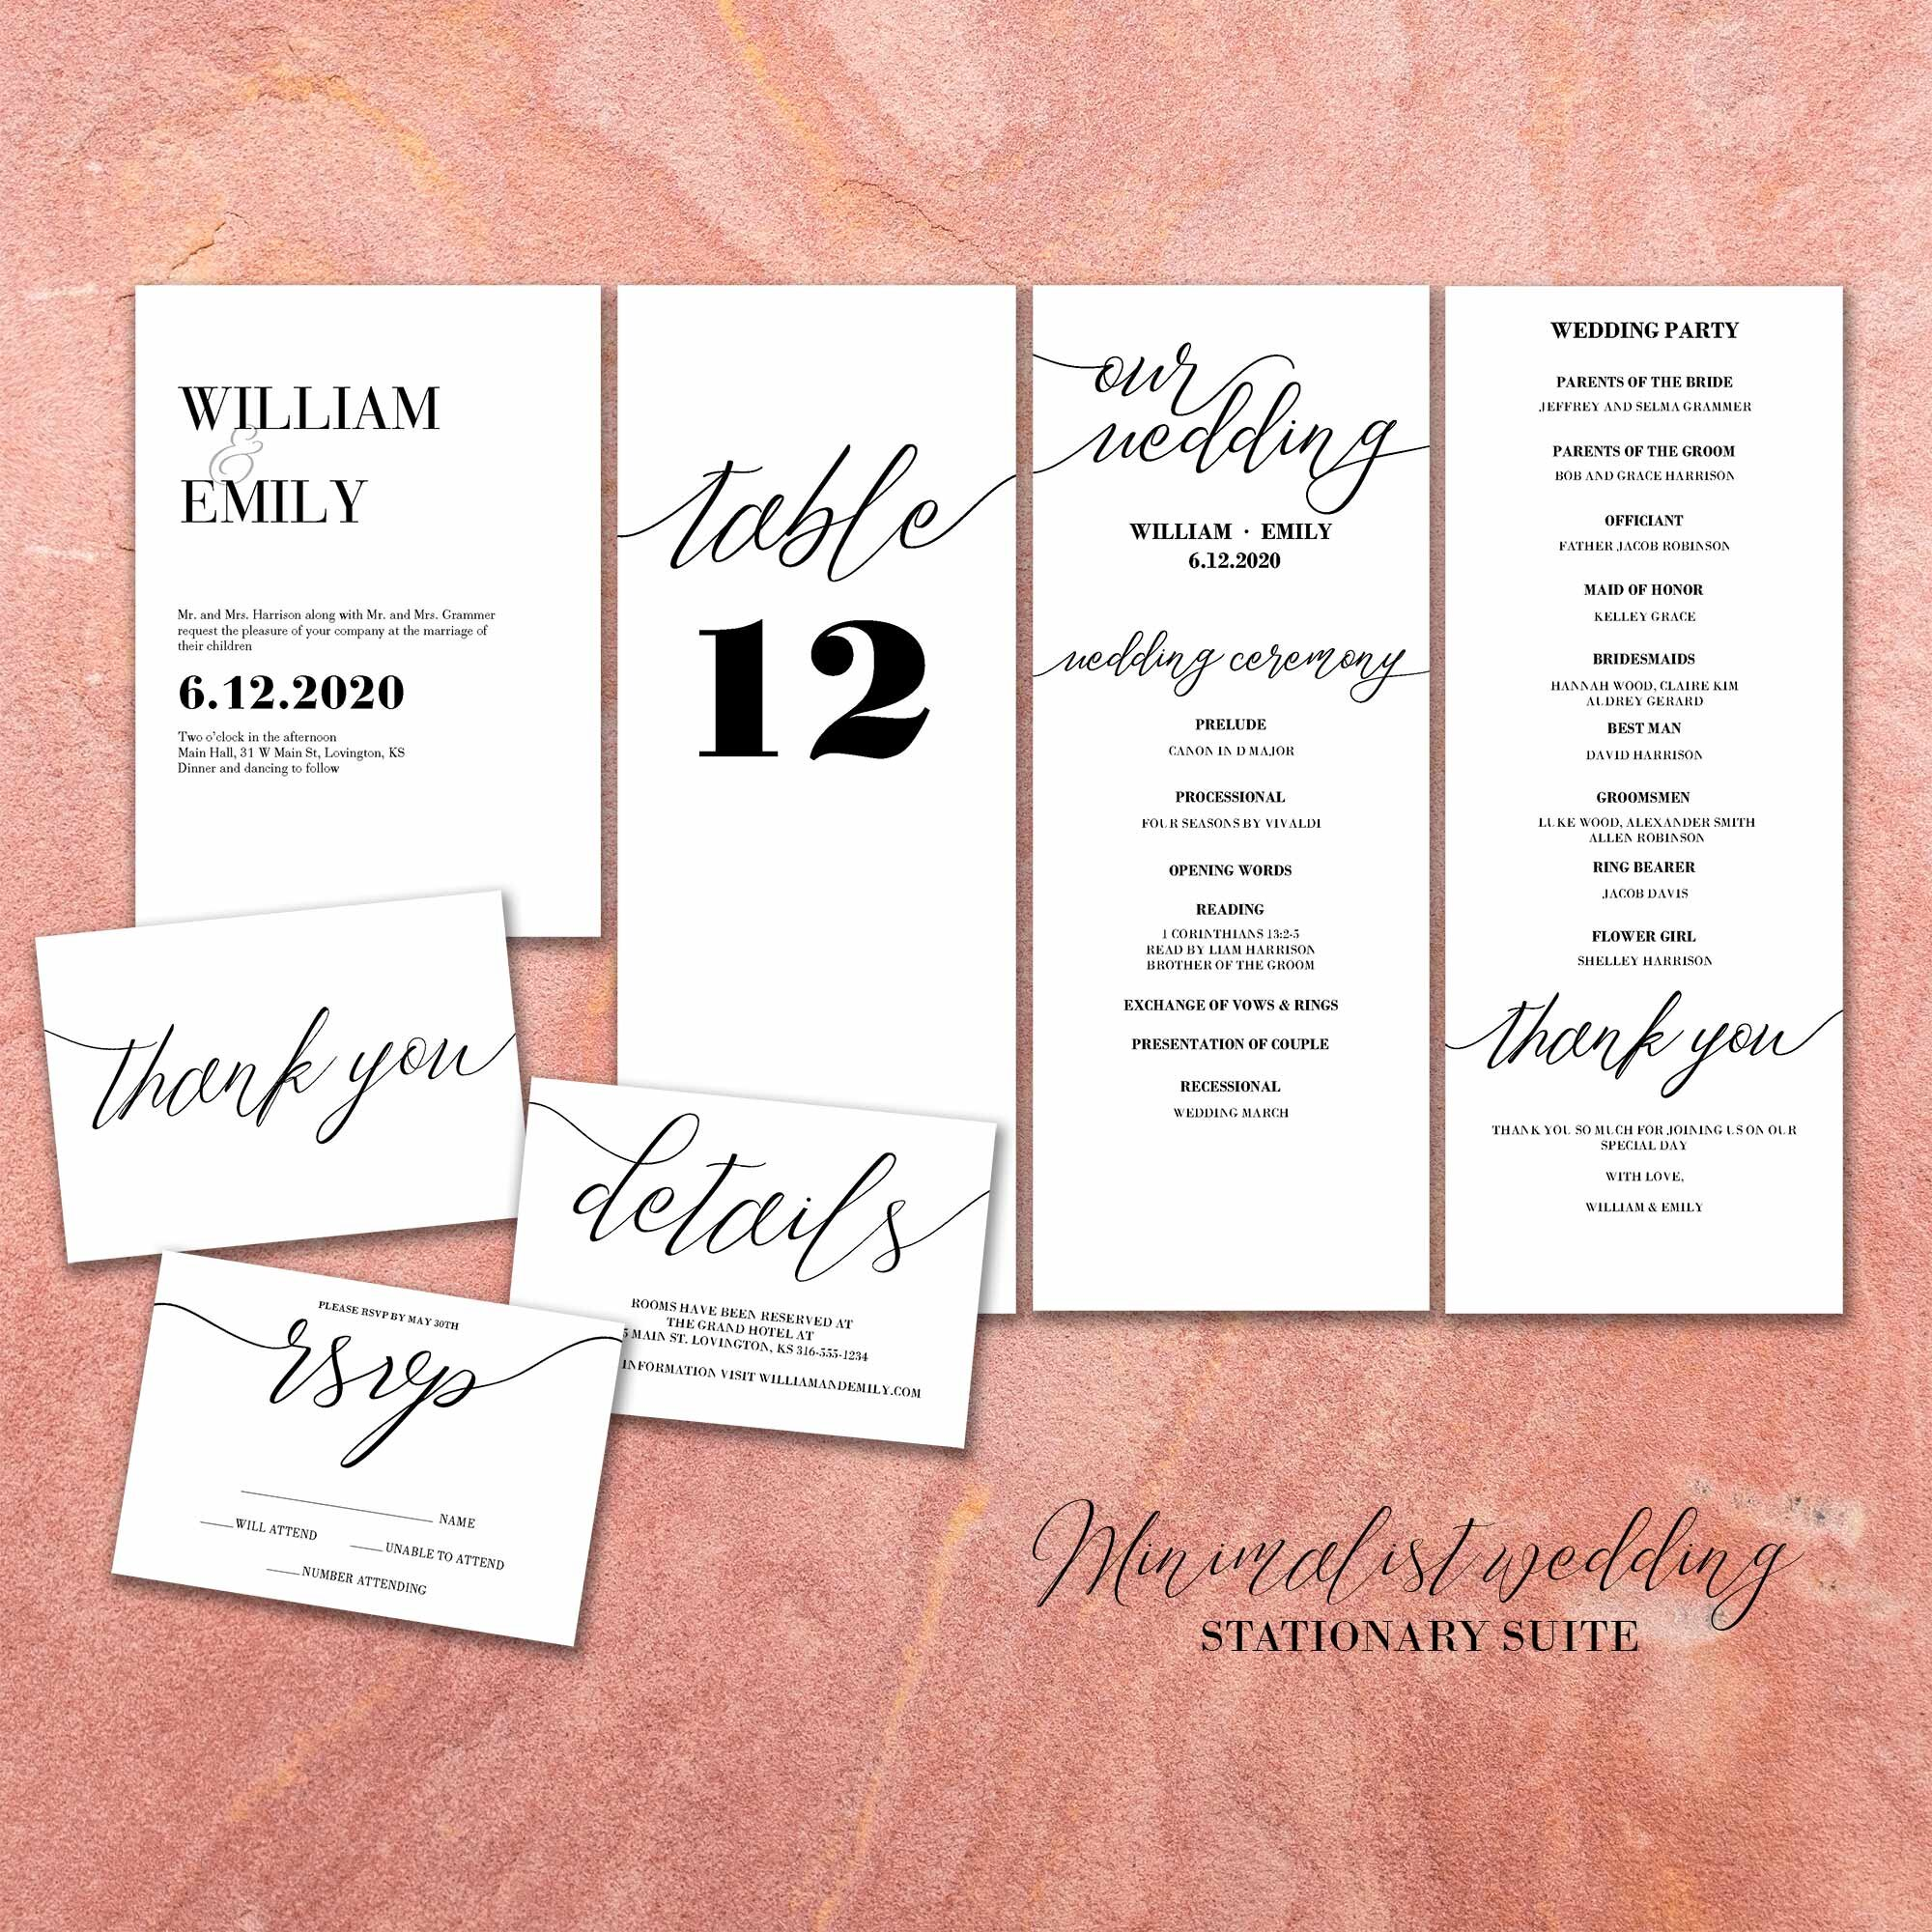 Continue your minimalist design from the Save the Date to this stationary Suite for Weddings including the all important invitation, thank you cards, rsvp insert, and extra details card for reigsteration and hotel information, table place card, and wedding program.